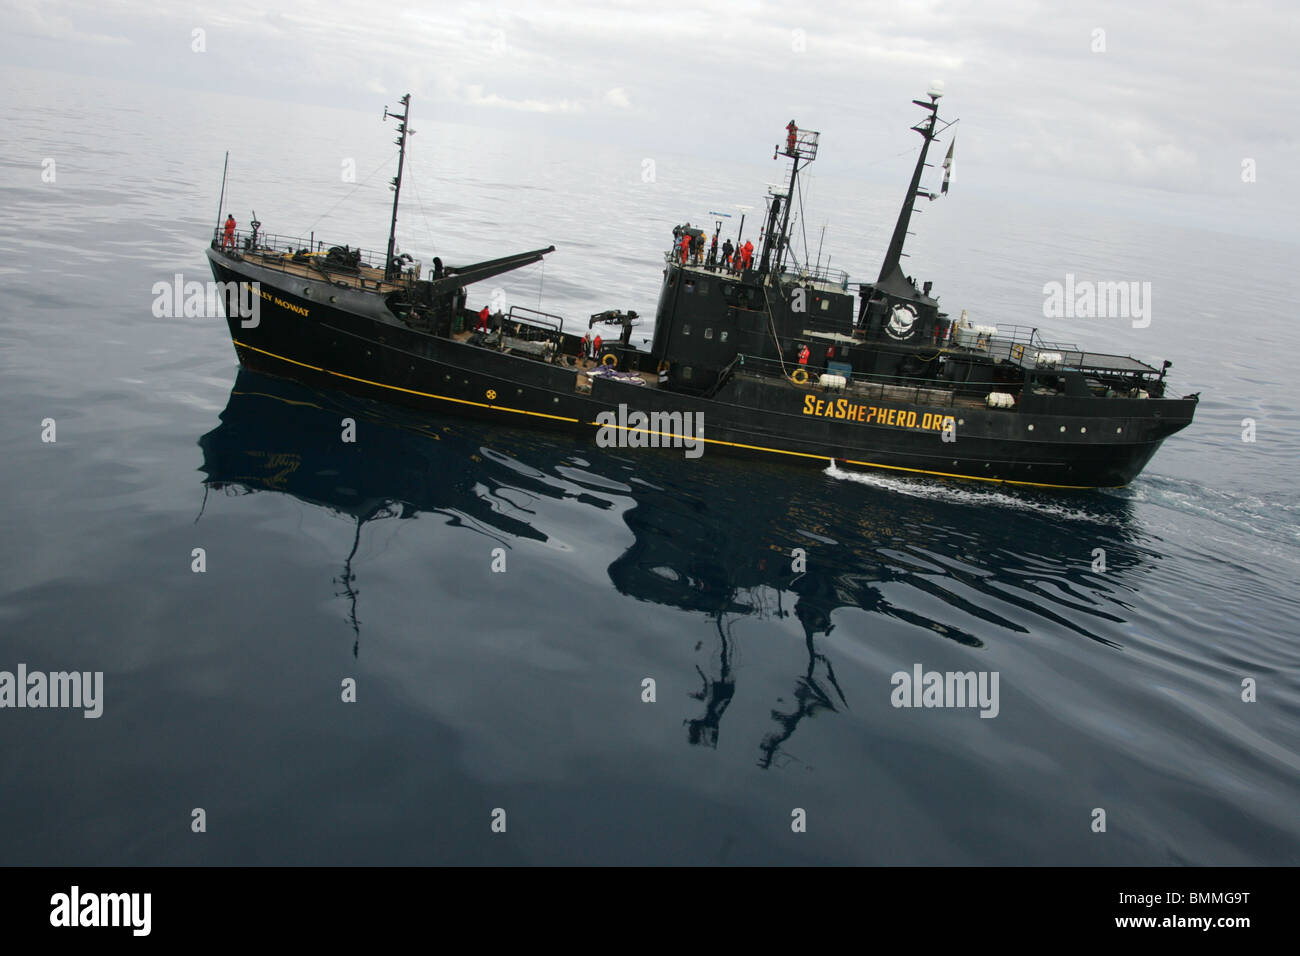 the sea shepherd conservation society The sea shepherd conservation society risk their lives to protect our ocean  friends help us help them.